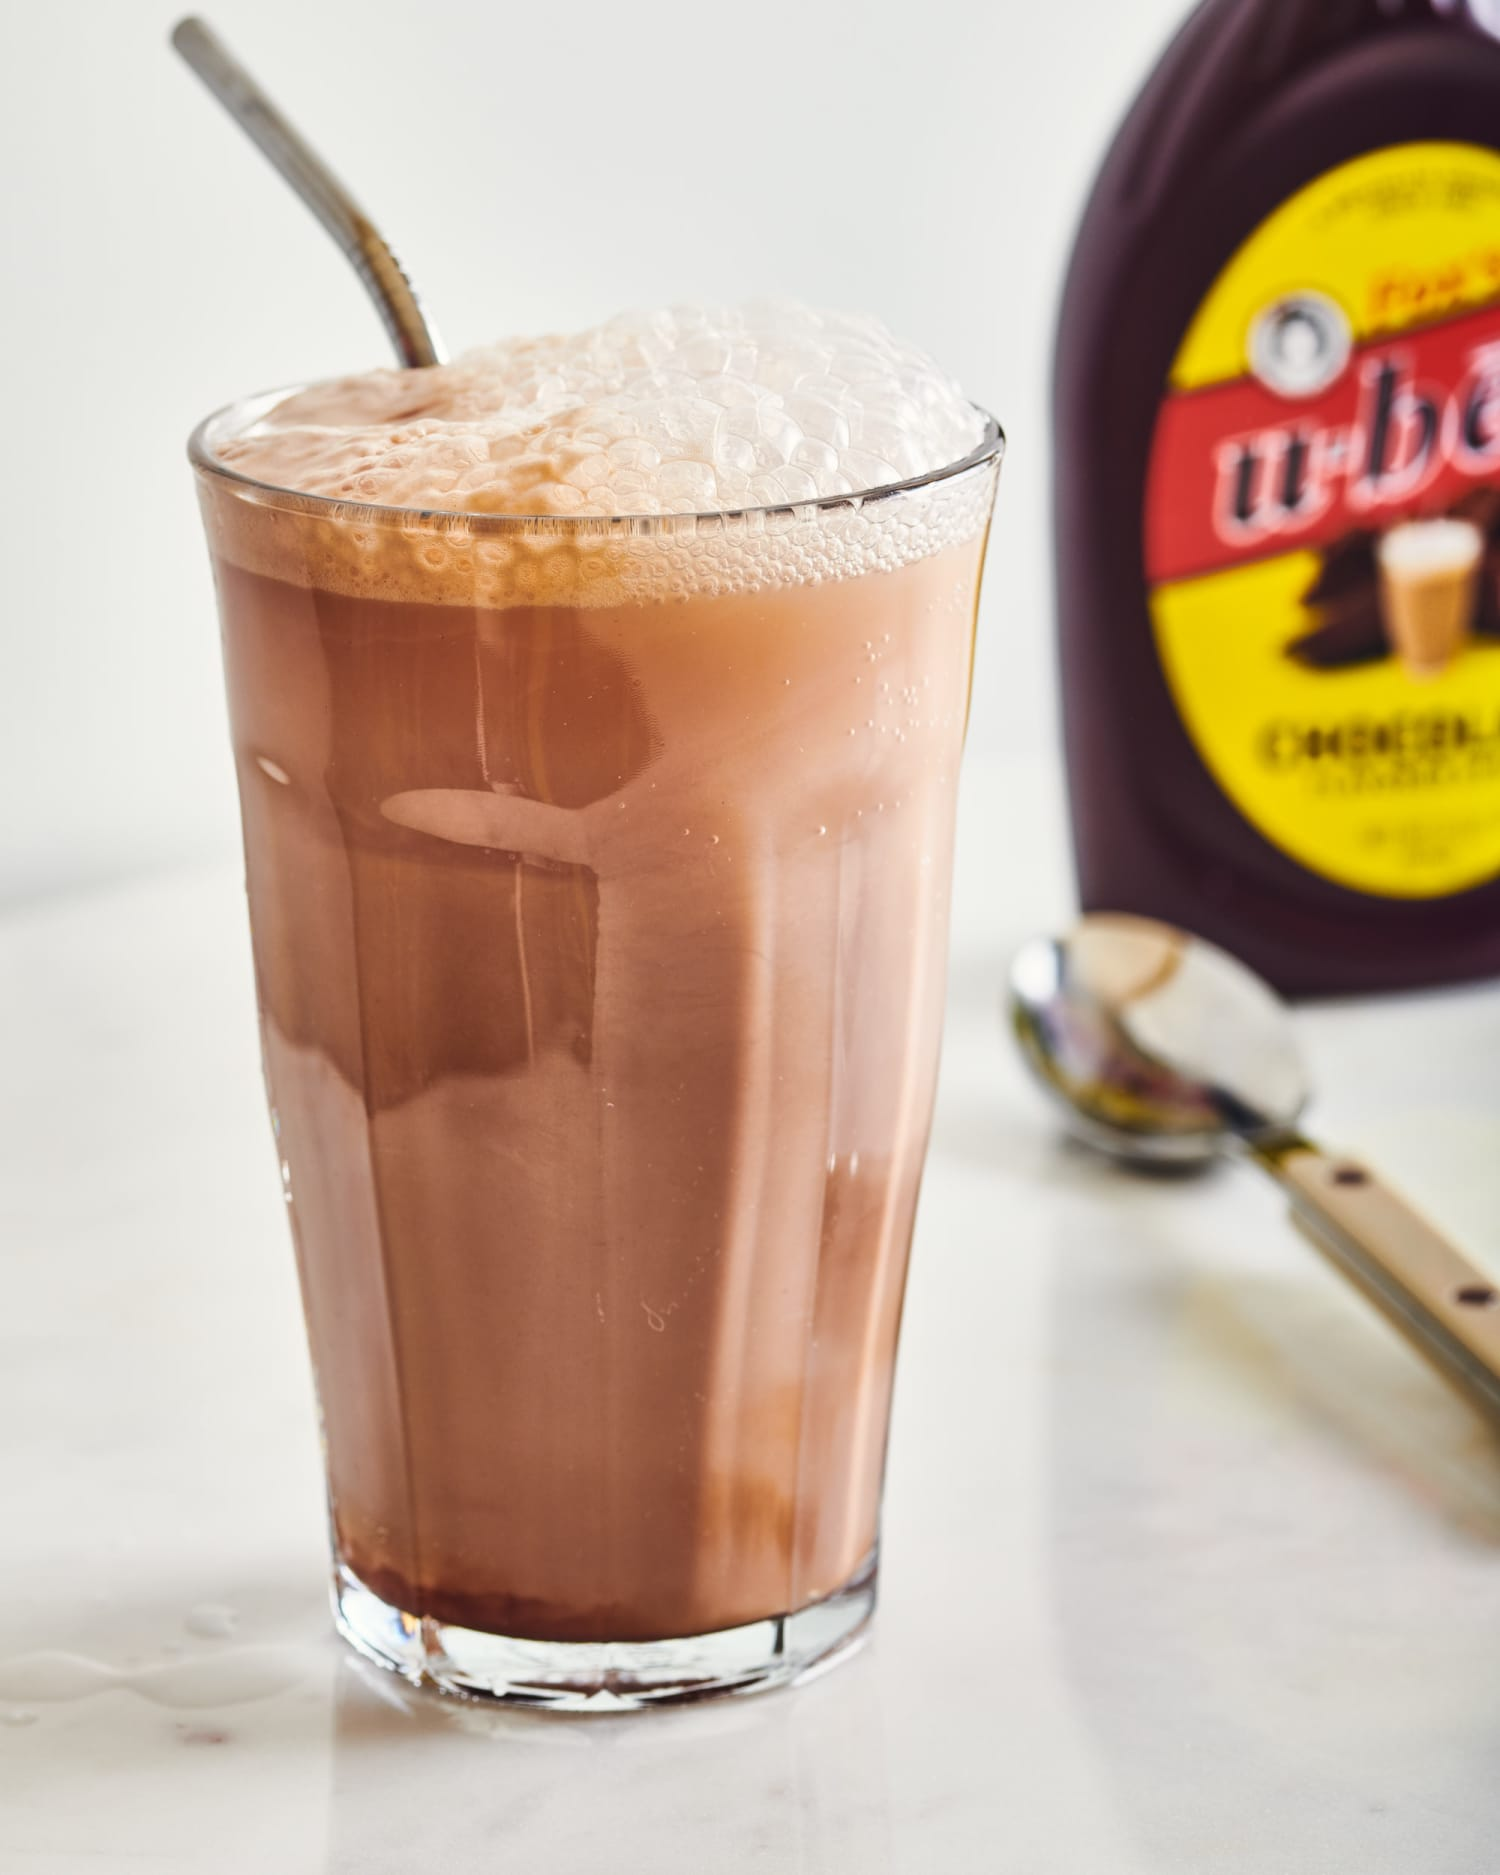 I Went on a Quest to Make the Perfect Diner-Style Egg Cream. Here's the Final Recipe.